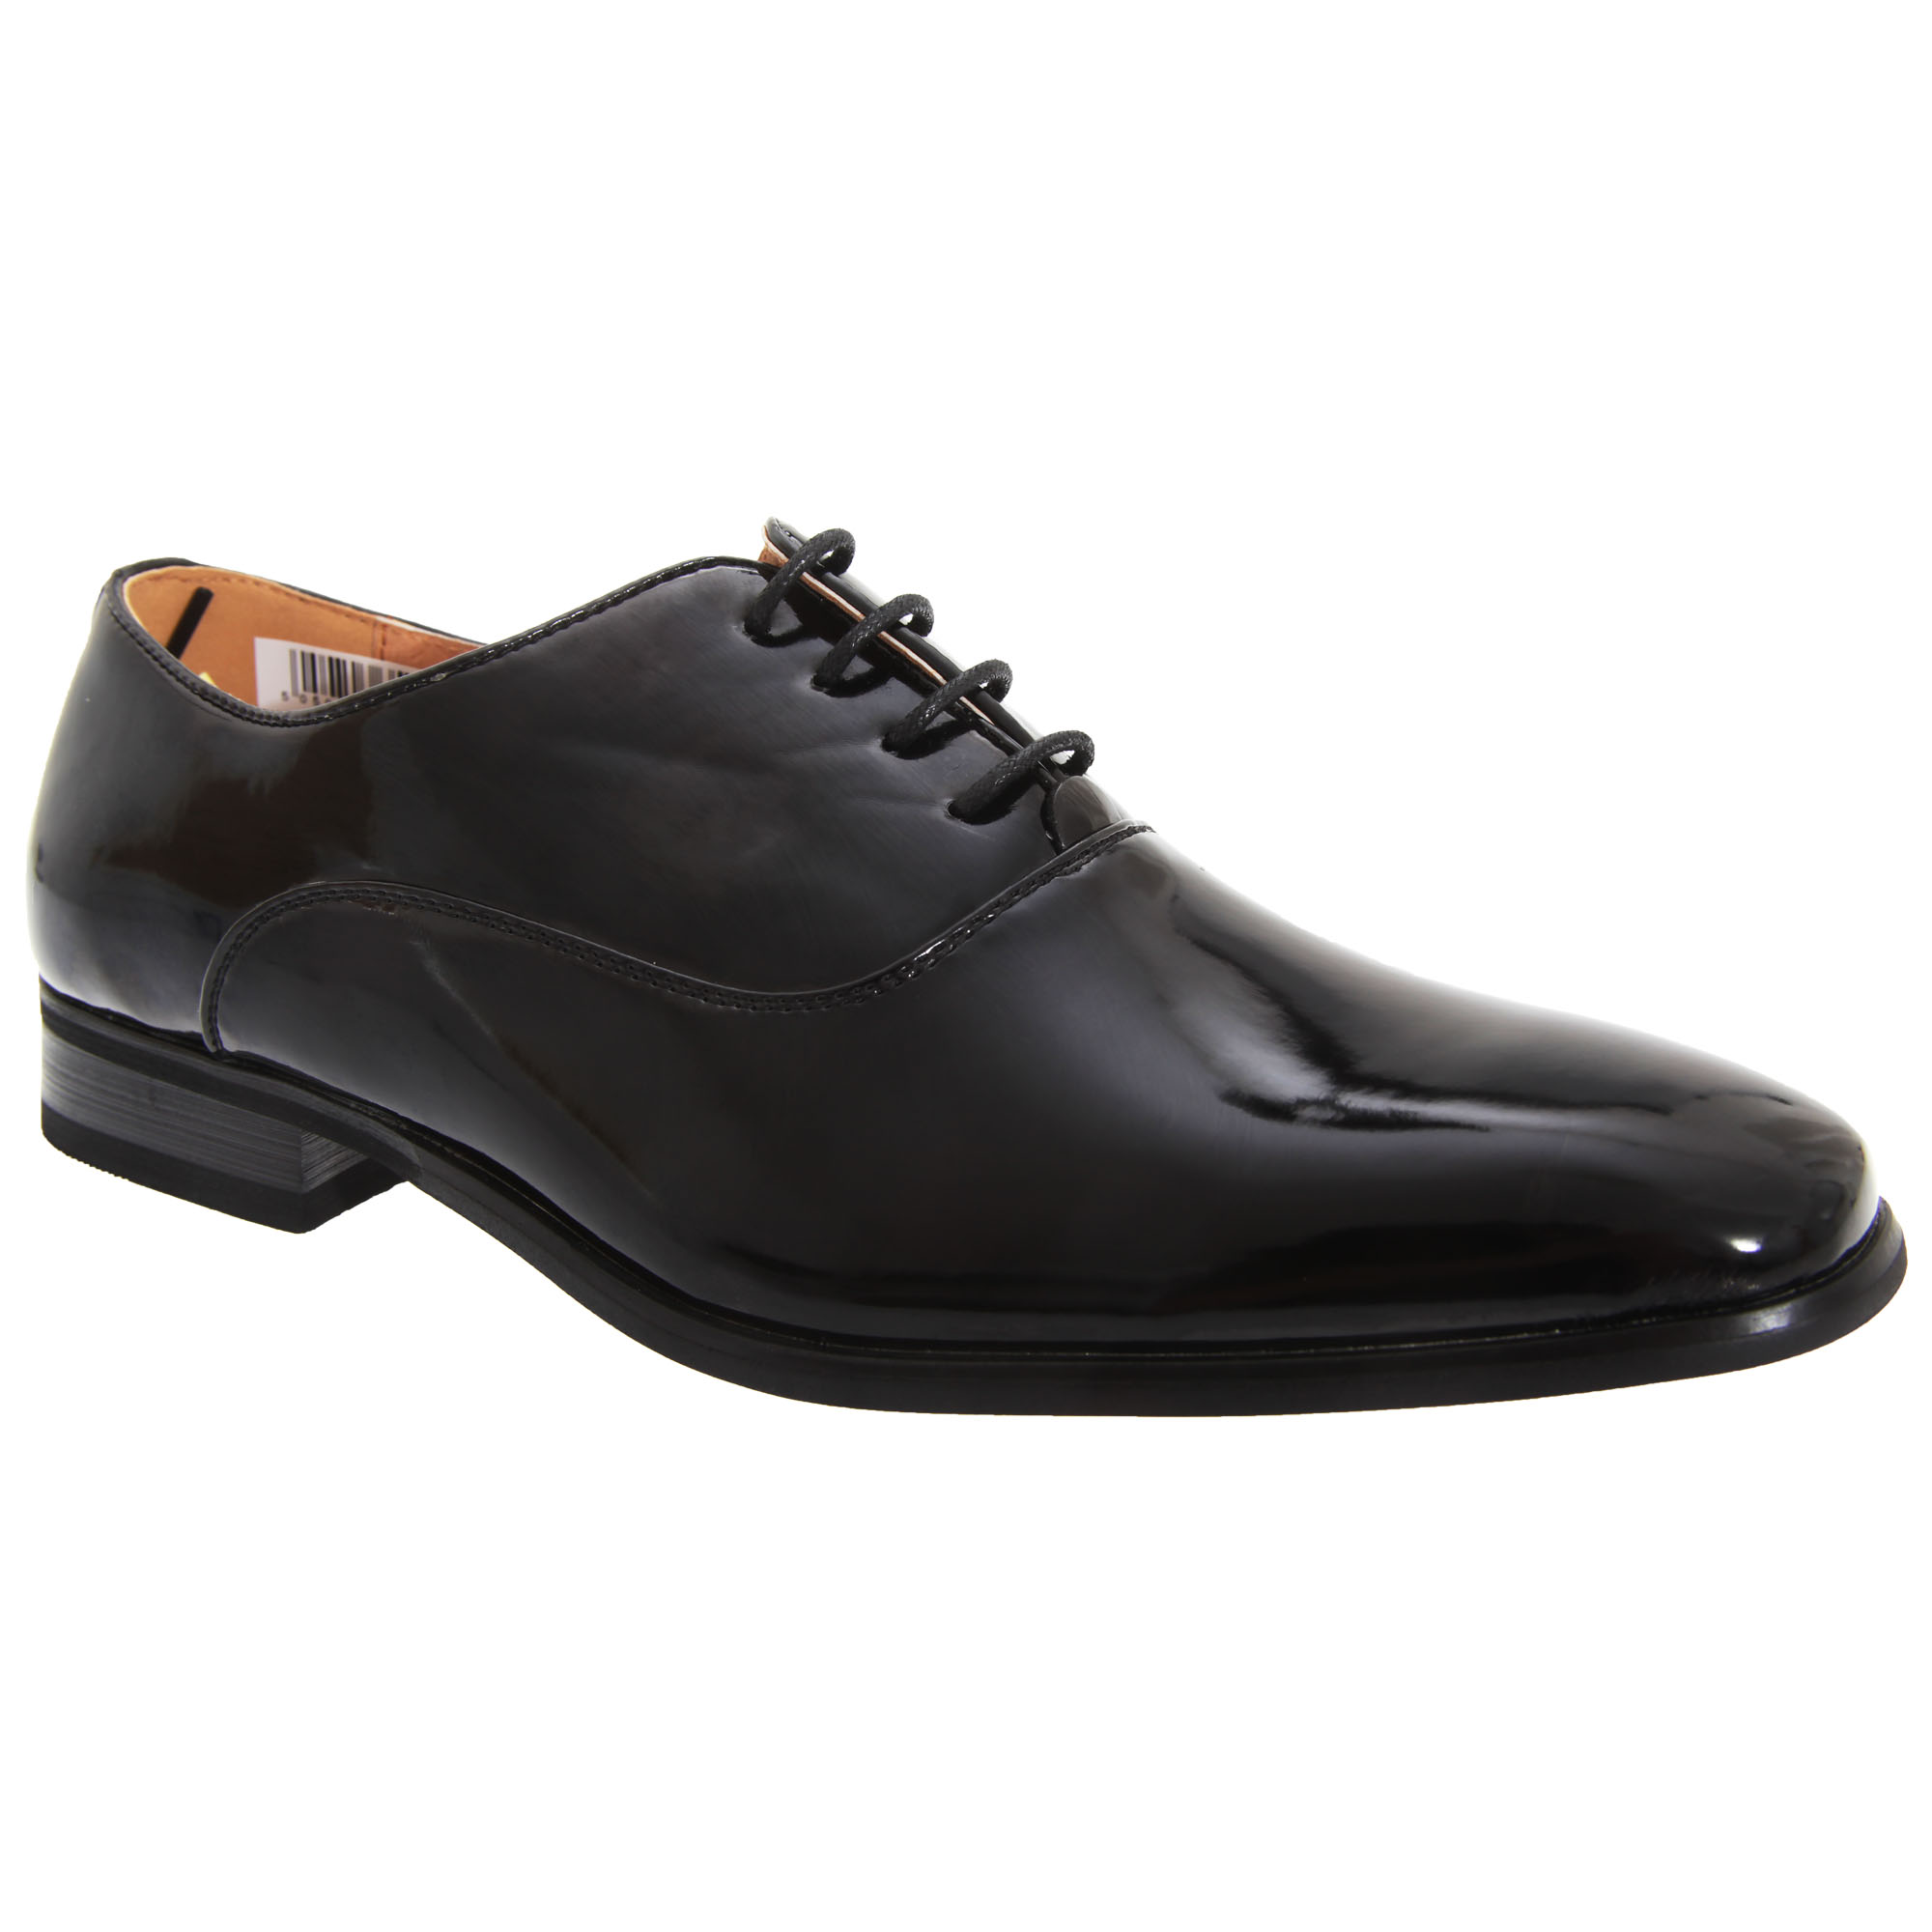 Find great deals on eBay for zapatos de charol hombre. Shop with confidence.